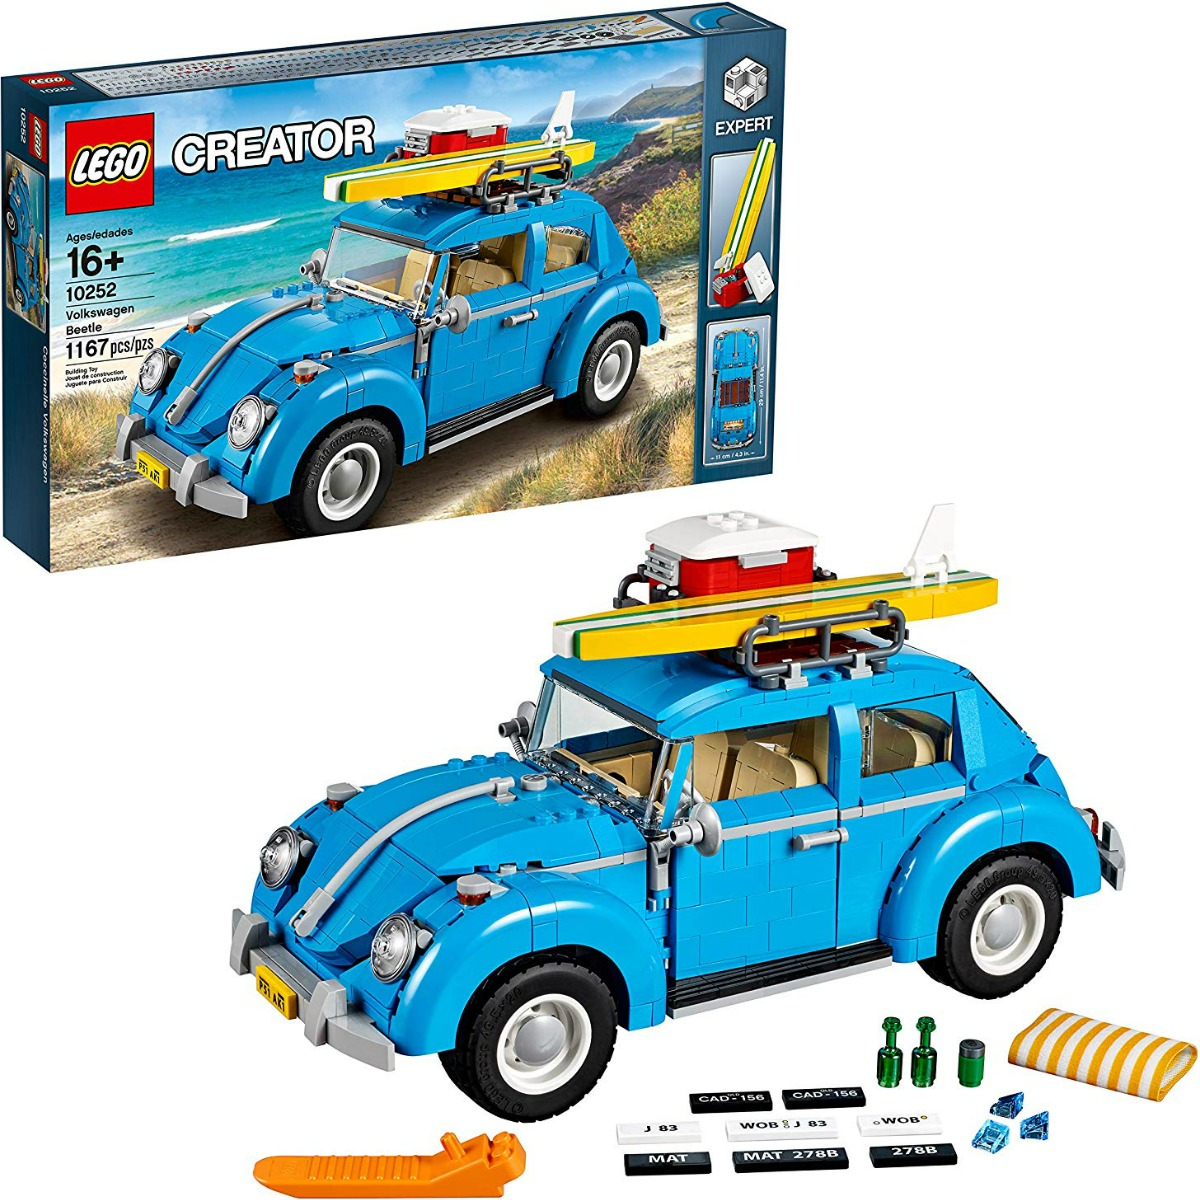 LEGO Building set of a Volkswagen Beetle near package